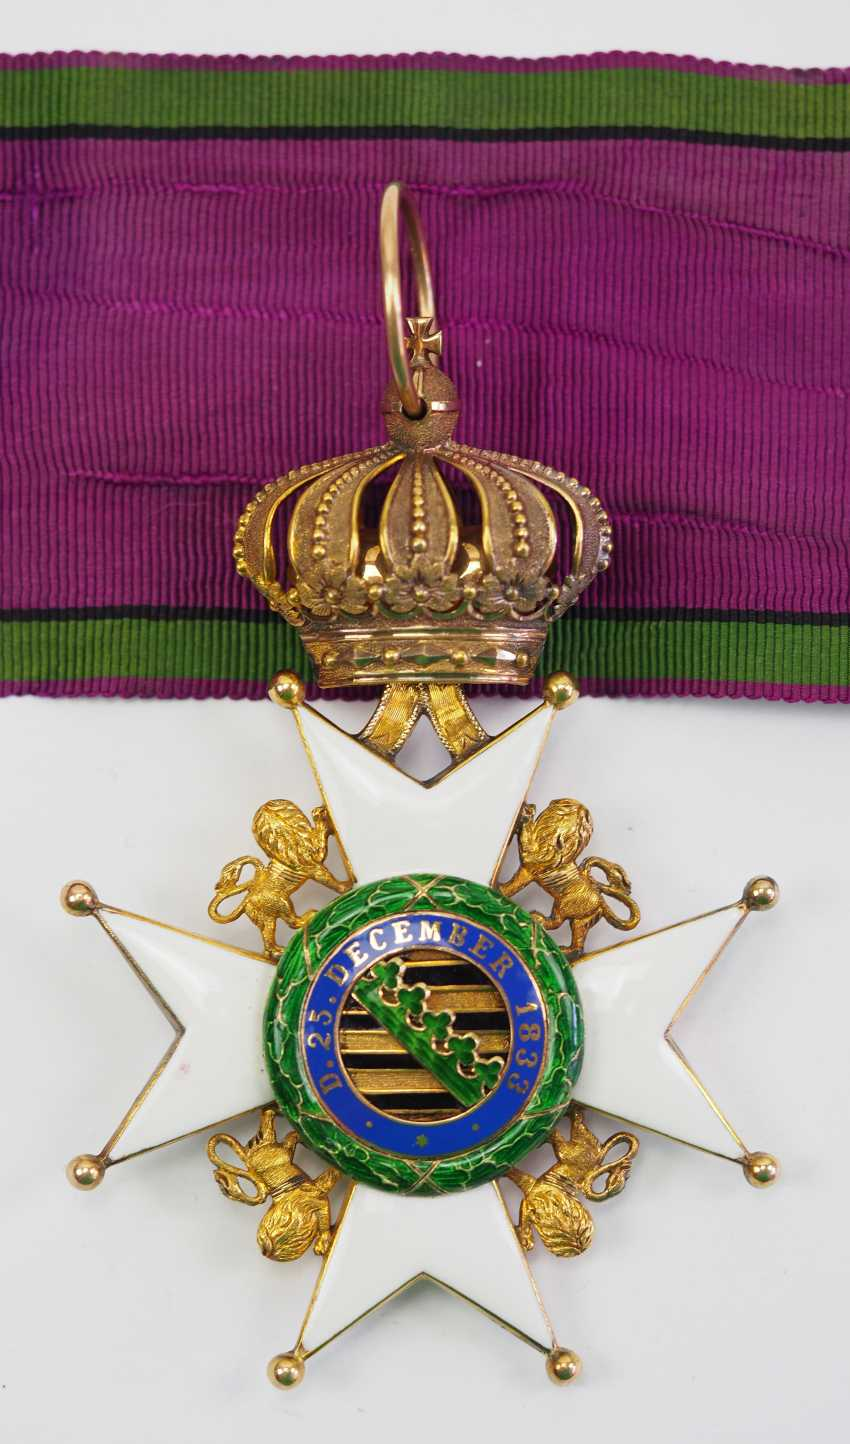 Saxon Duchies: Ducal Saxony Ernesti Order Of The House, 2. Model (1864-1935), Comtur Cross. - photo 3